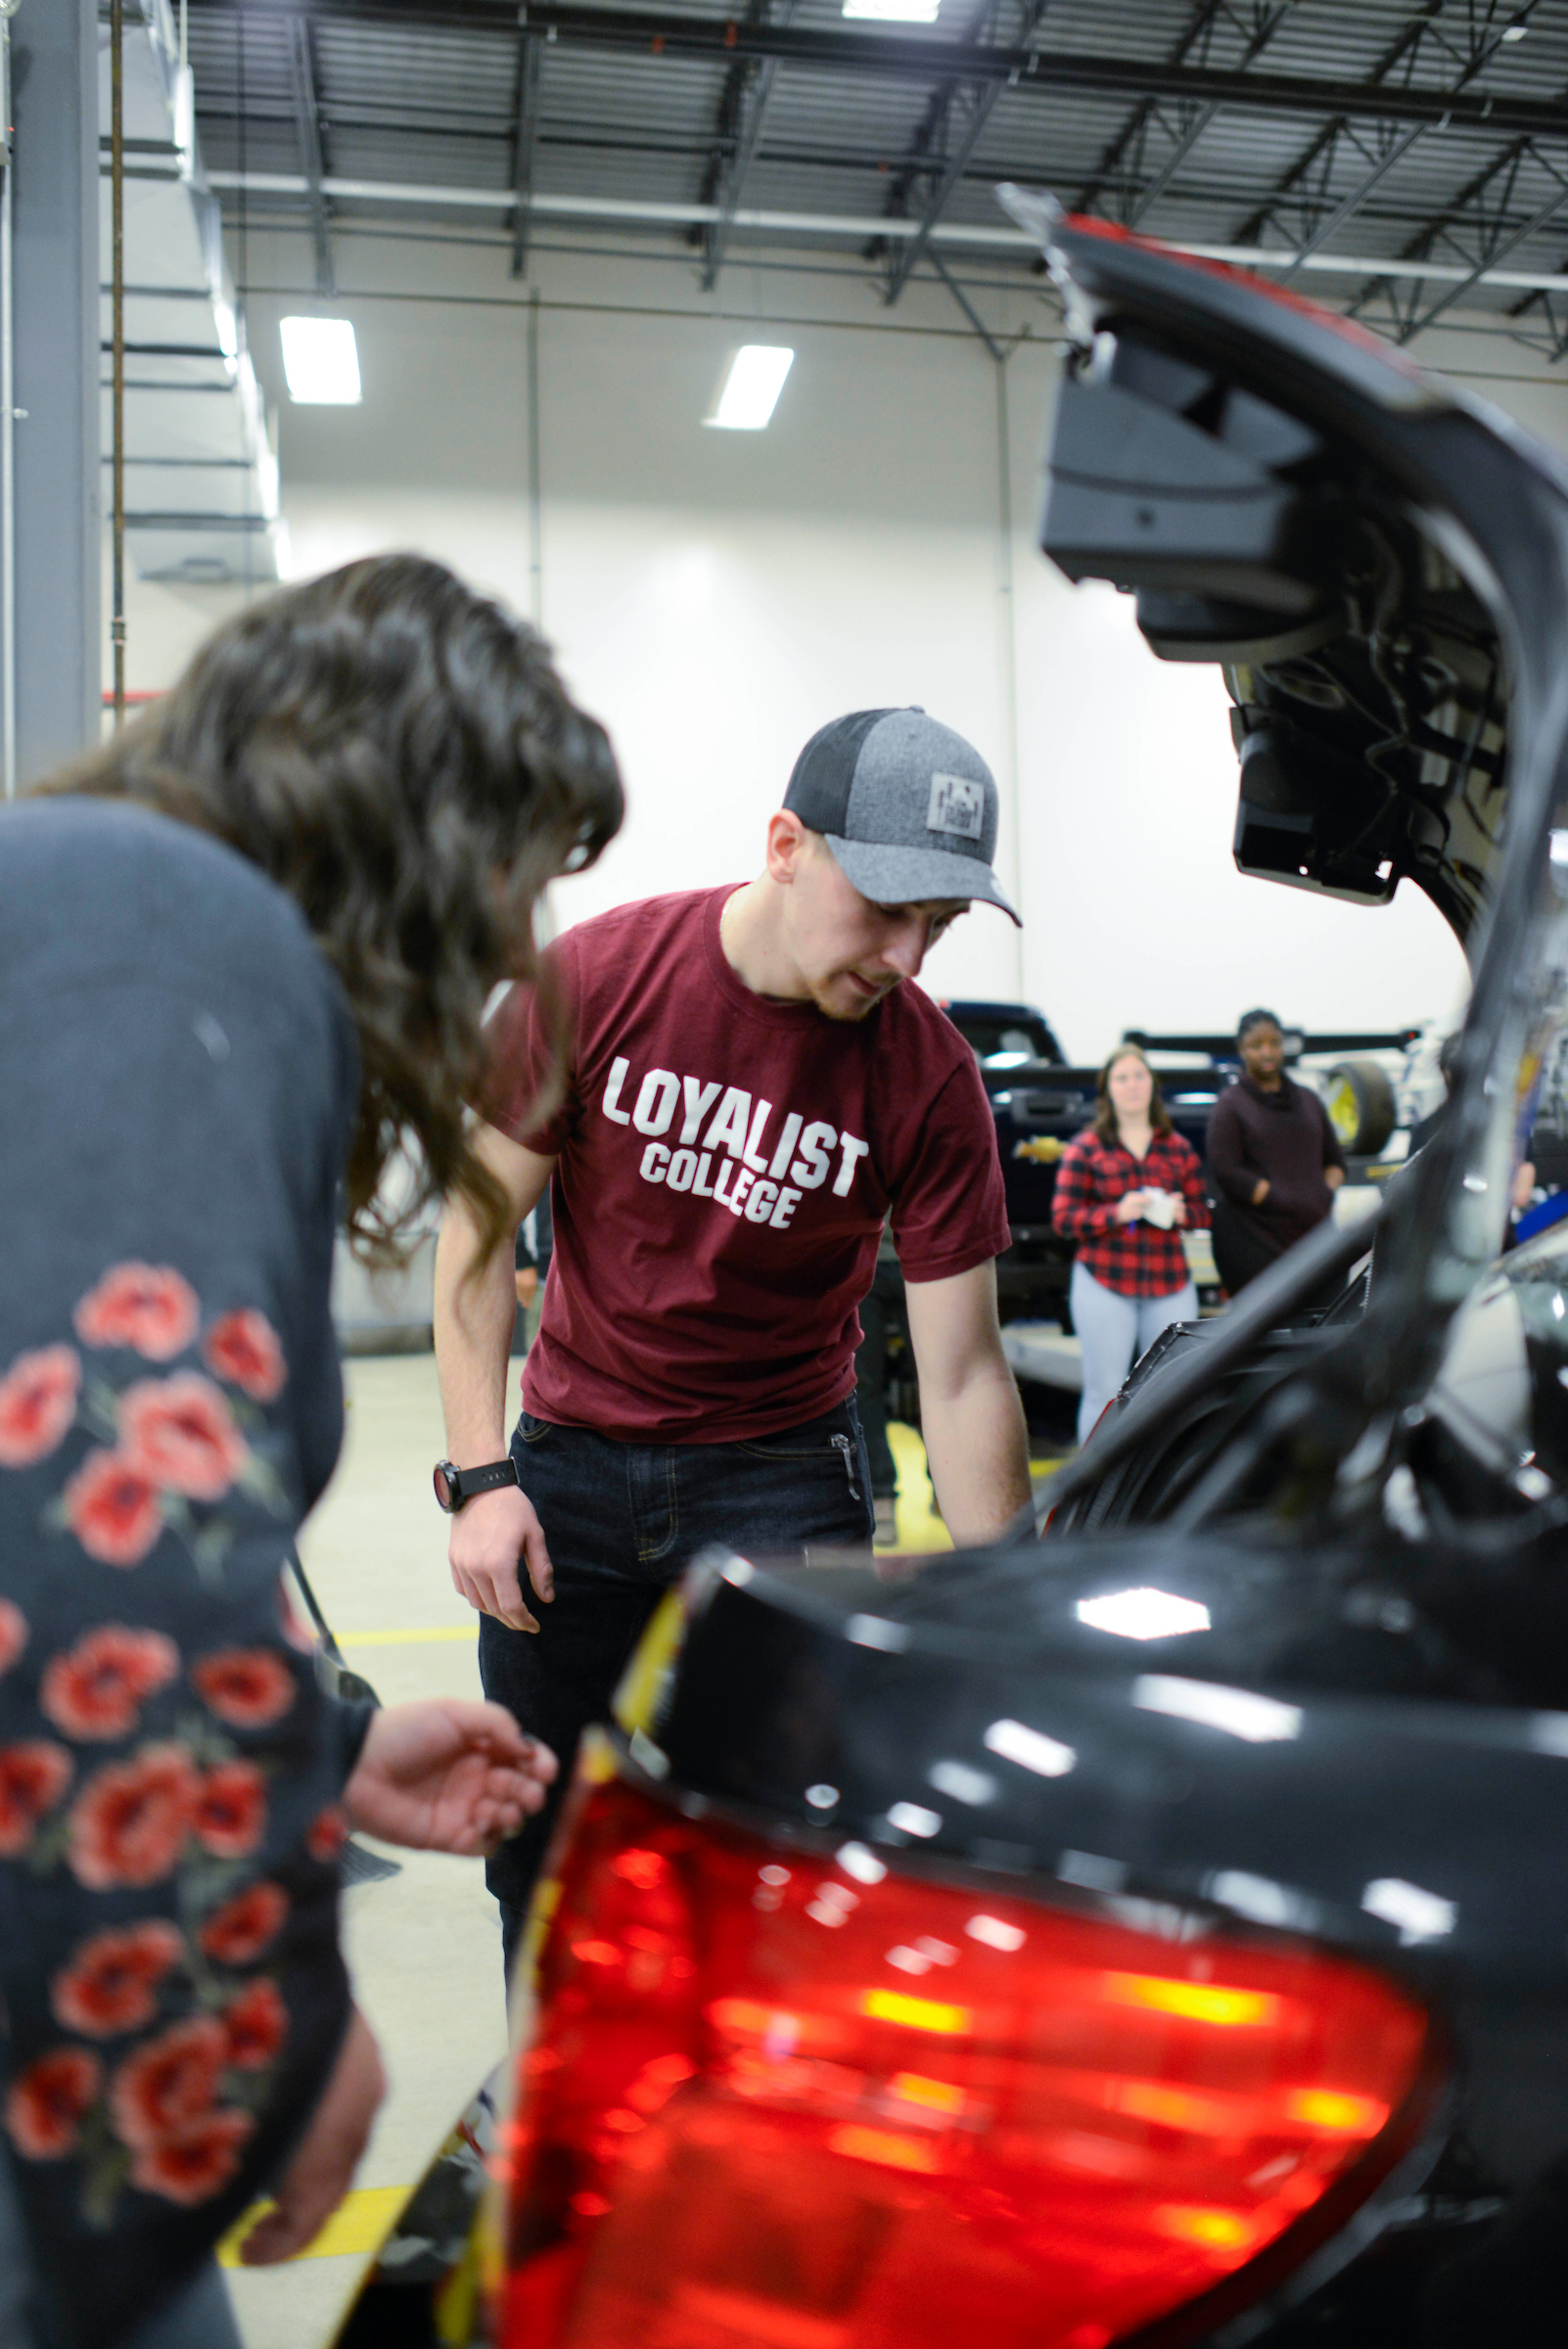 A group of Customs and Border Security students inspect the trunk of a car during a class exercise.